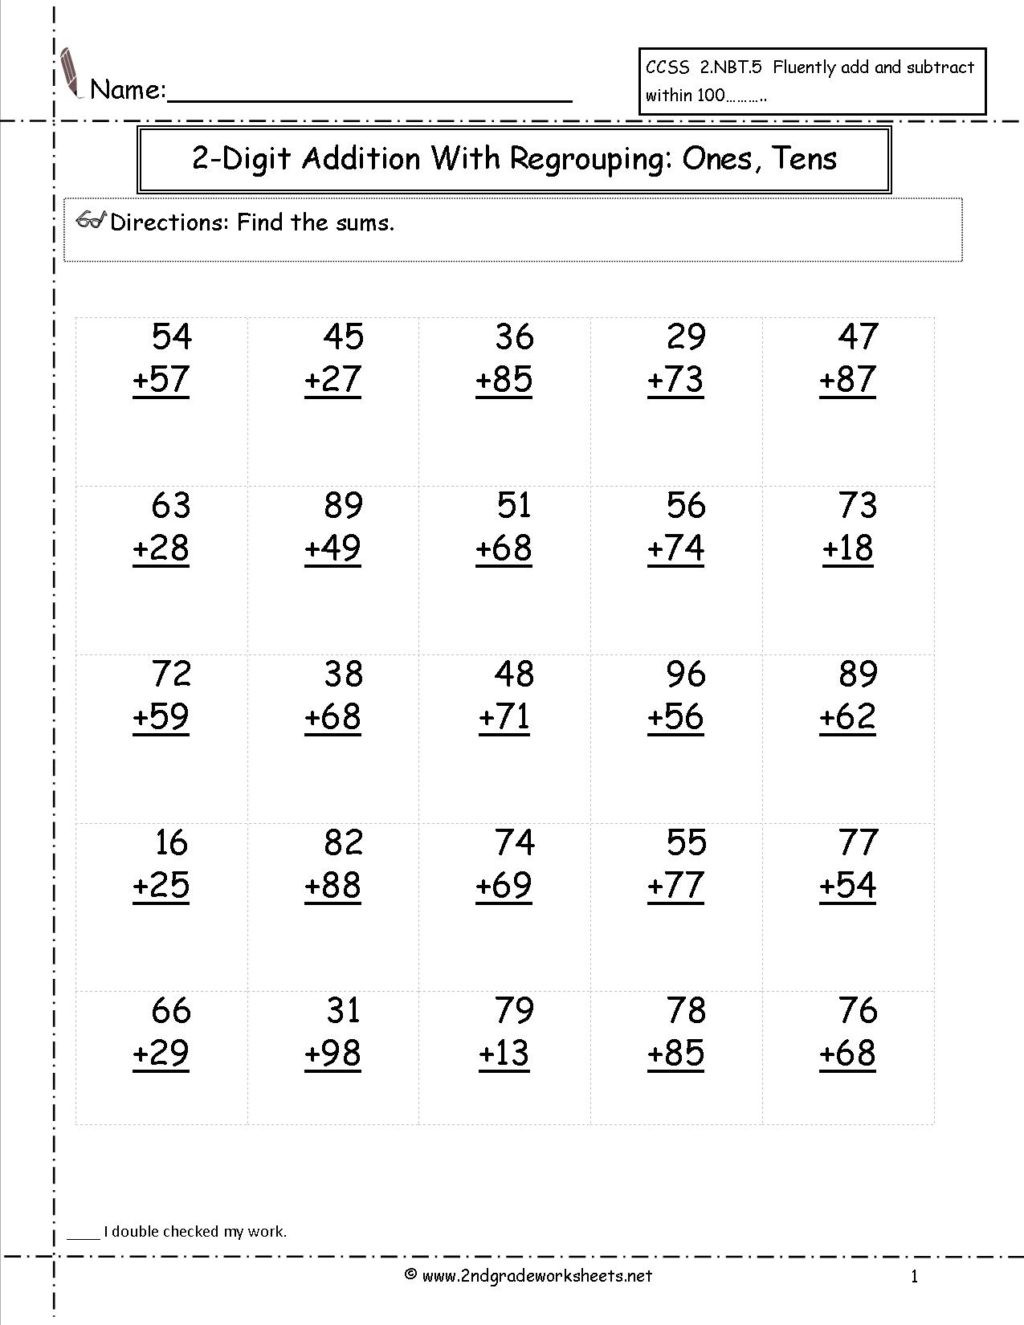 Adding Doubles Worksheet 2nd Grade Worksheet Addition withrouping Worksheets 2nd Grade